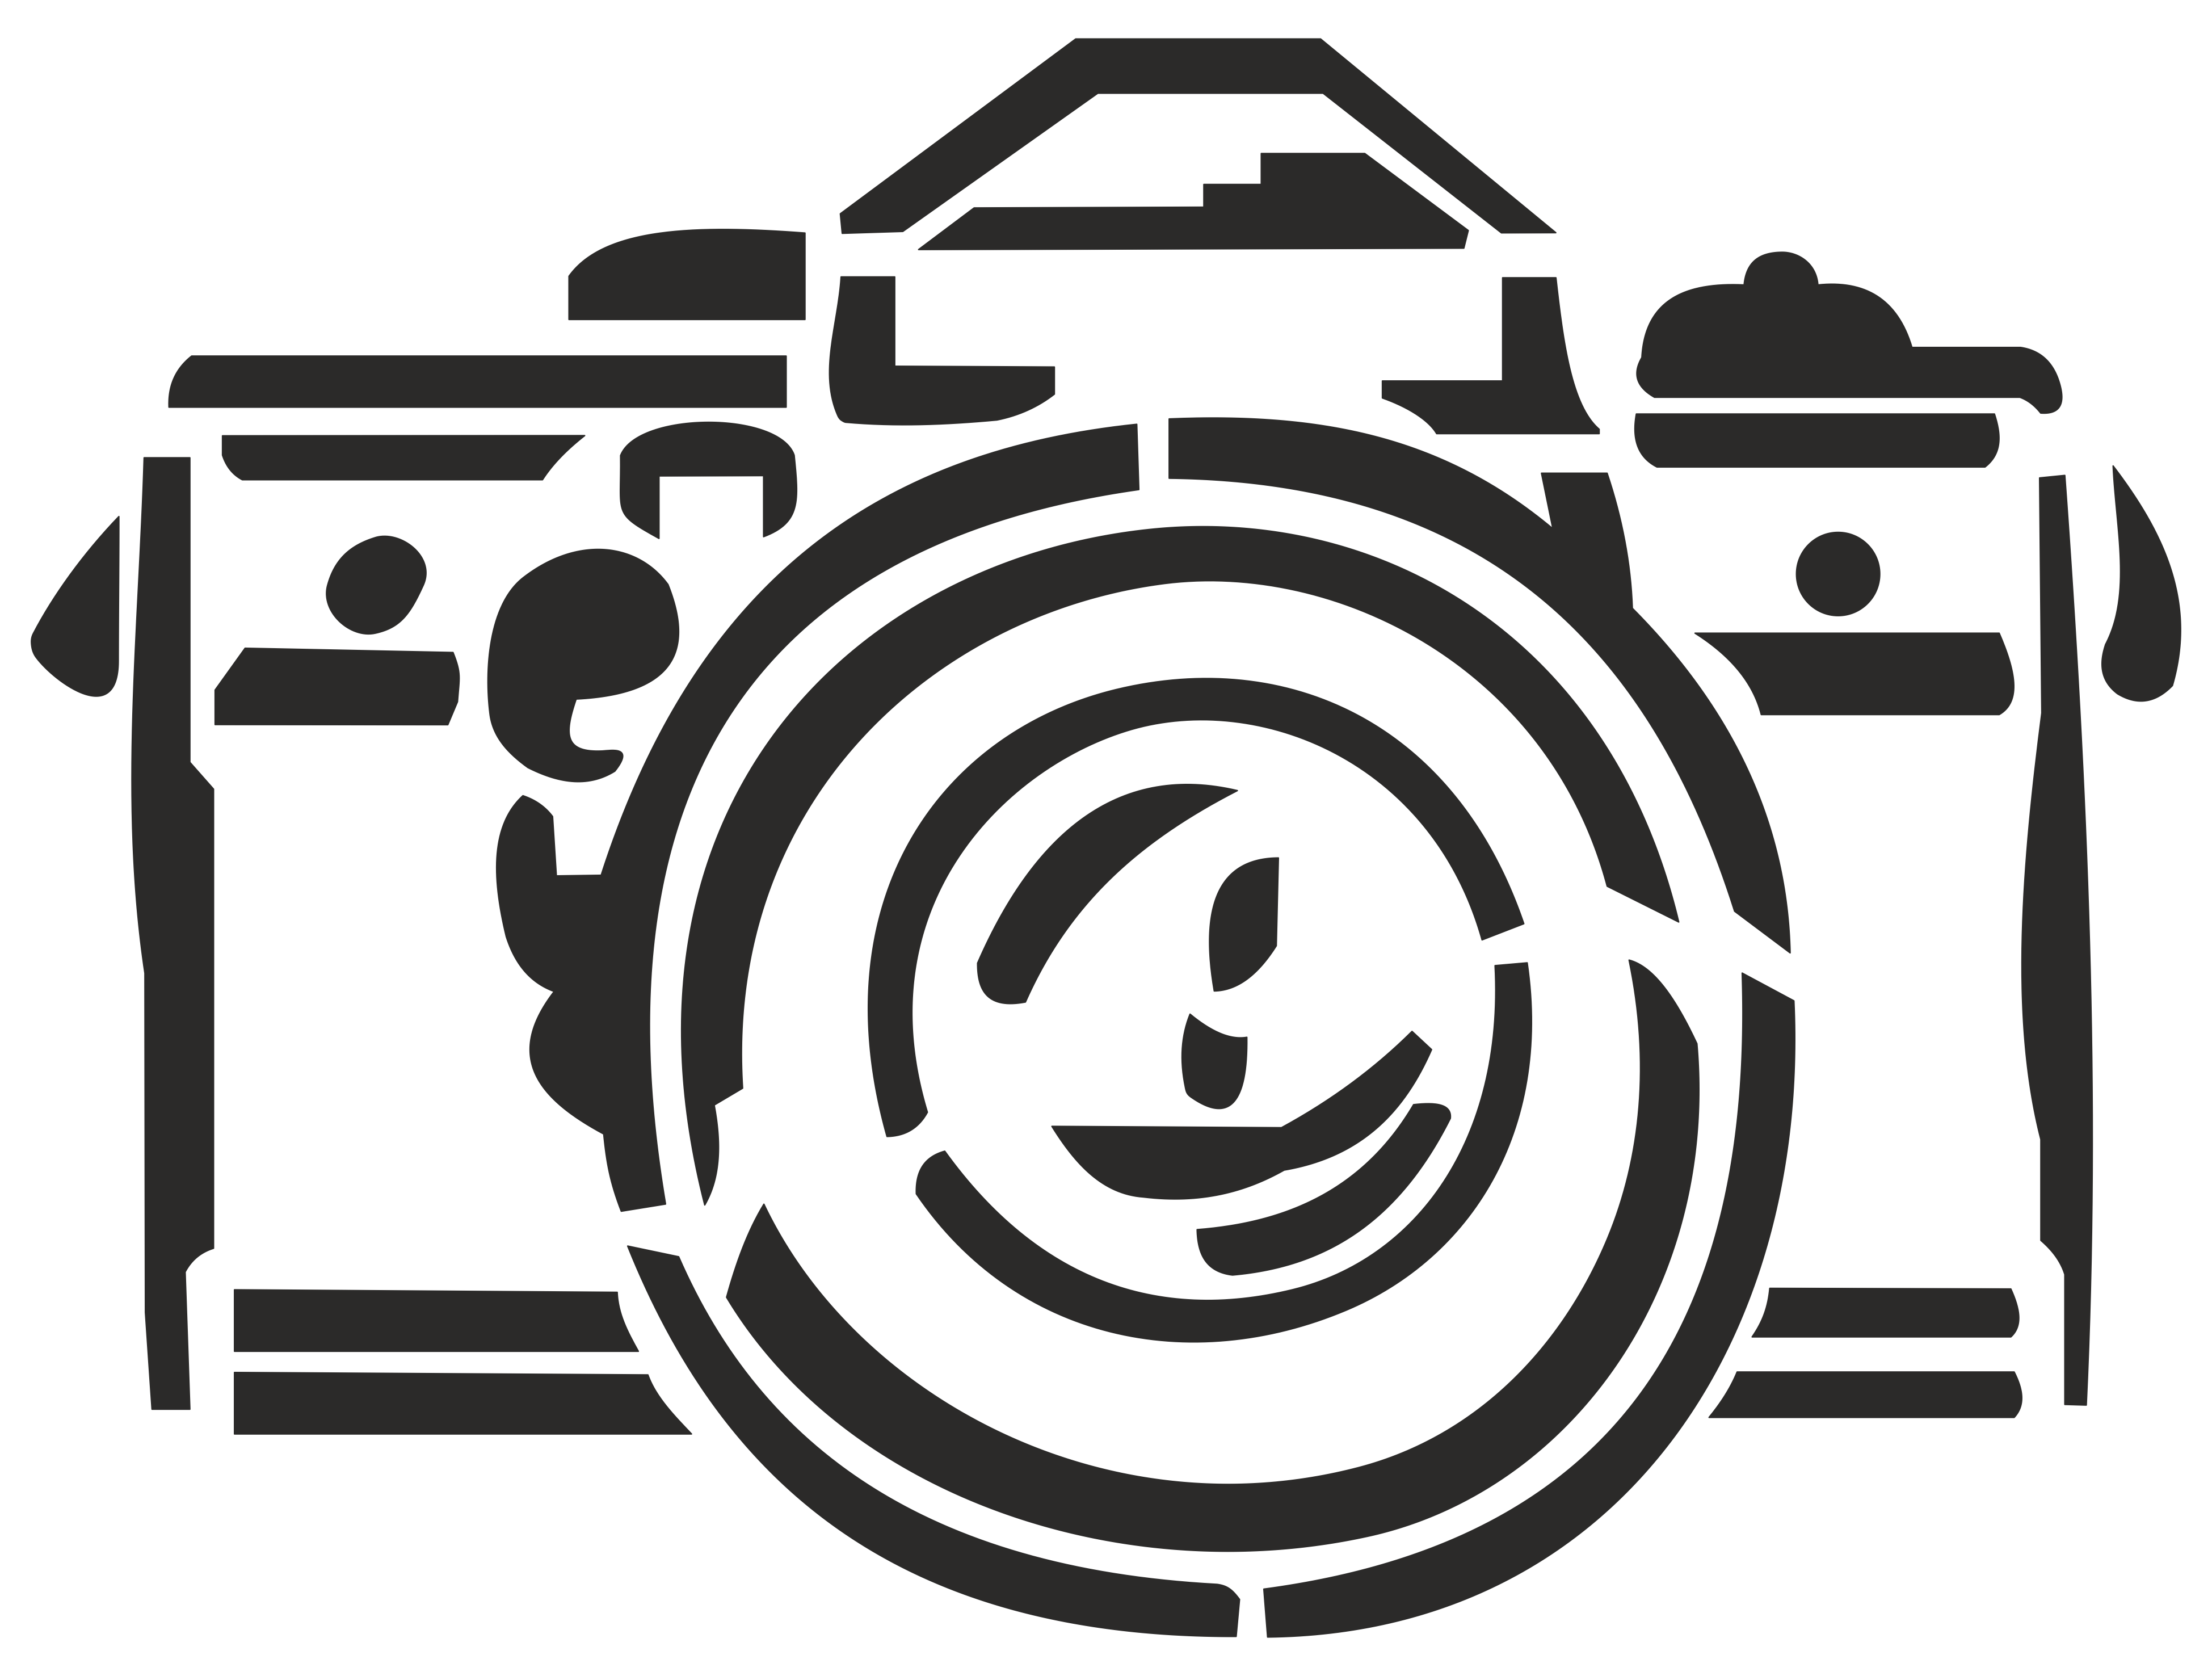 camera logo cliparts 7147